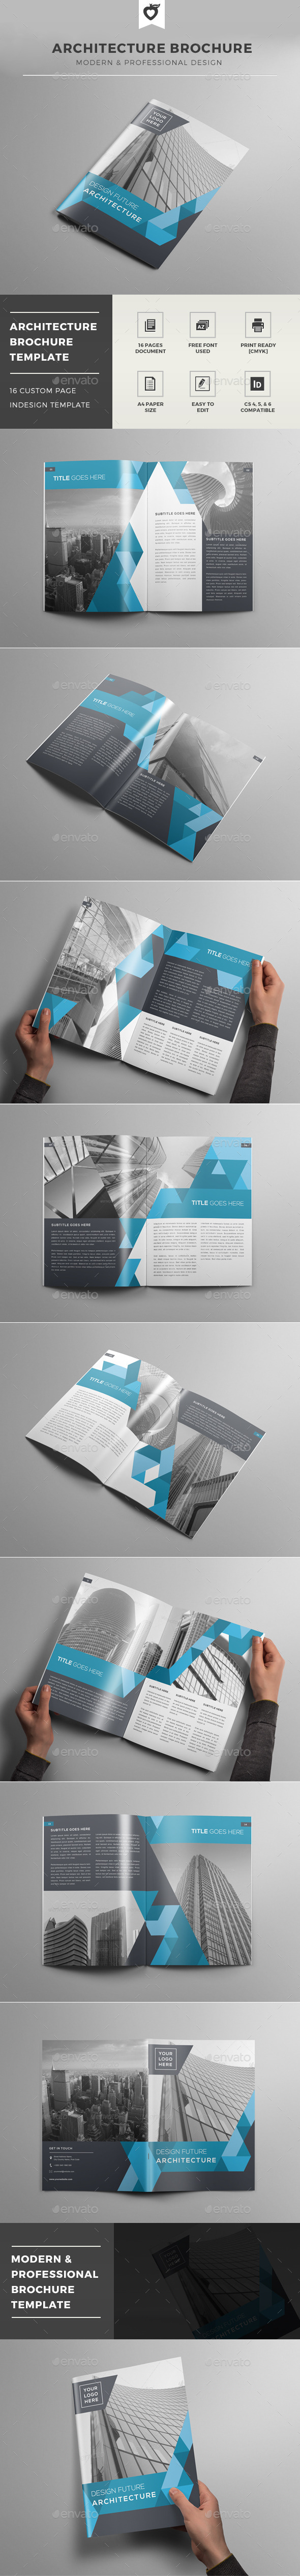 Architecture Brochure - Corporate Brochures